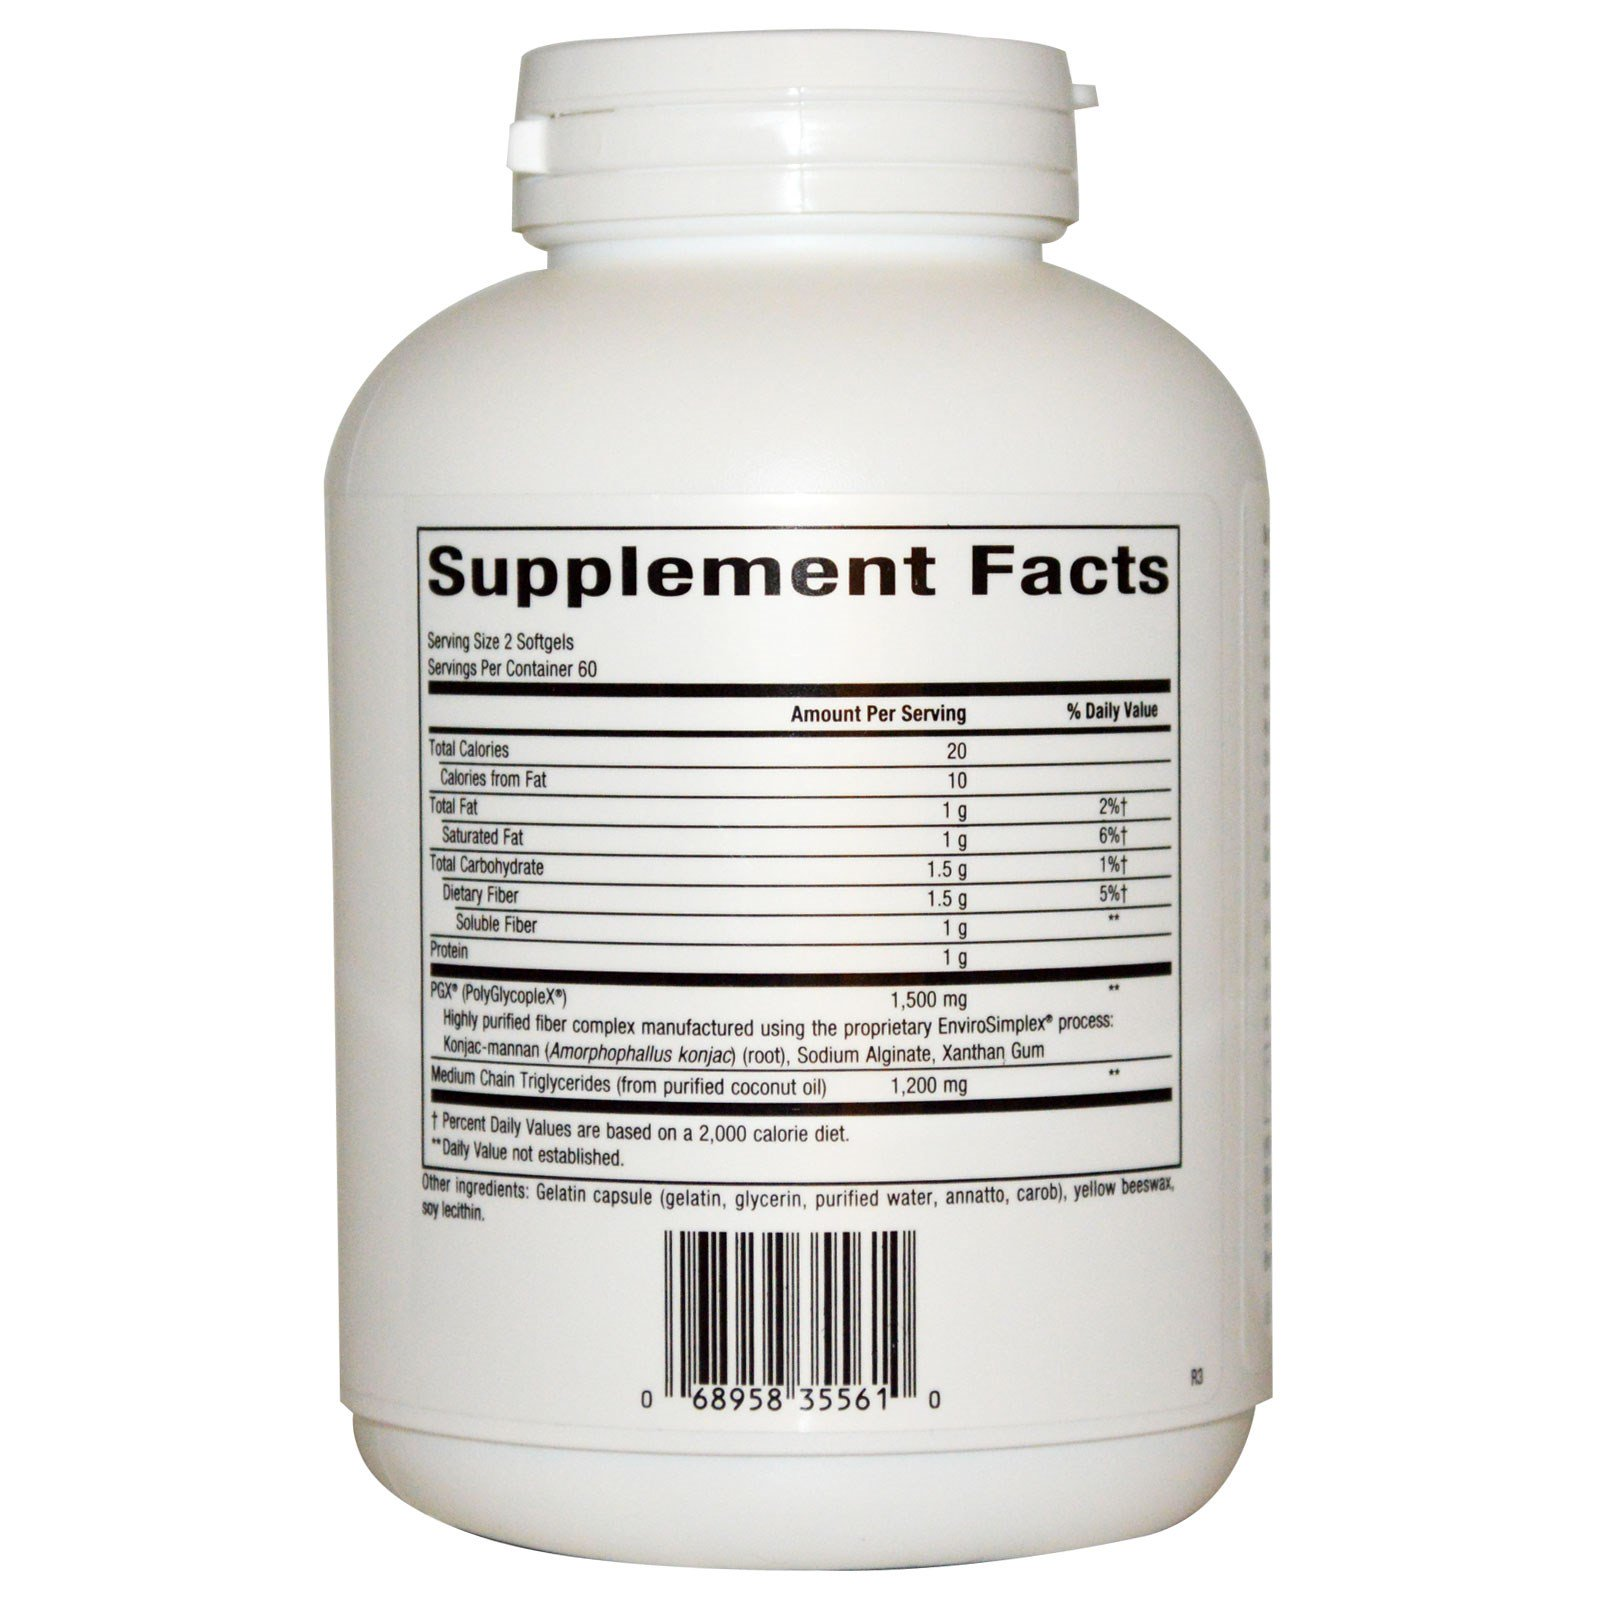 weight loss supplements uae